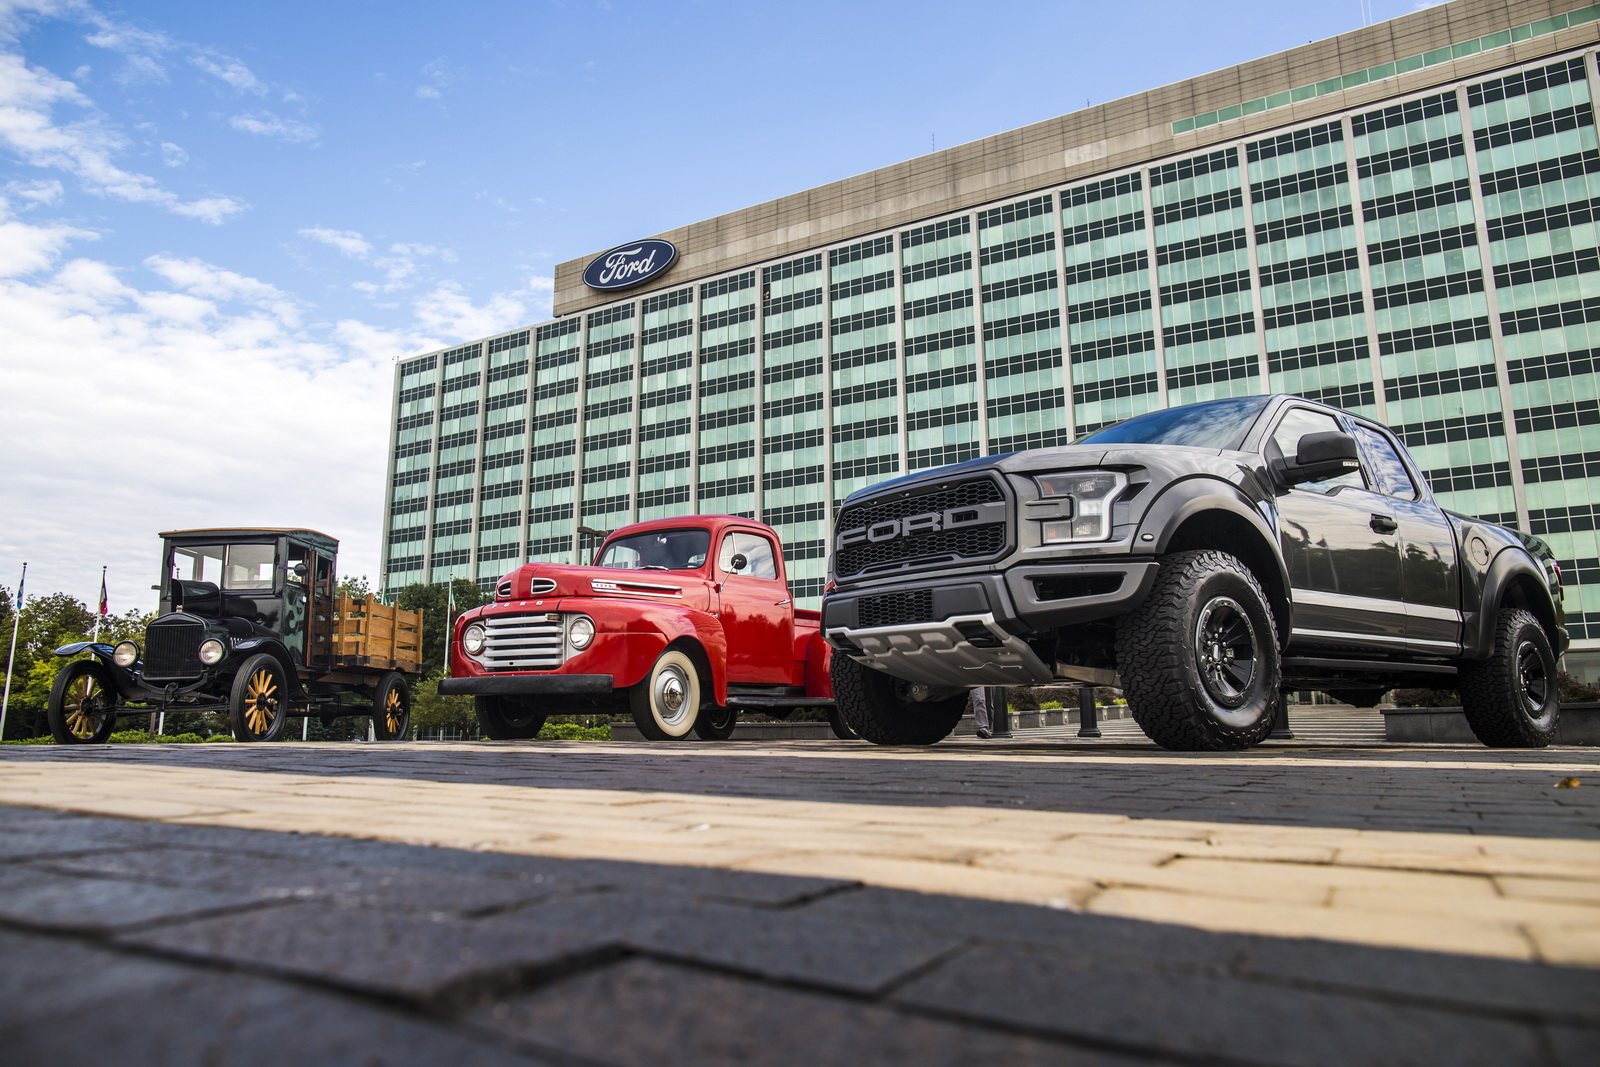 One hundred years ago today, Ford introduced its first purpose-built truck, the 1917 Ford Model TT, forever changing the auto industry – and the very nature of work itself.